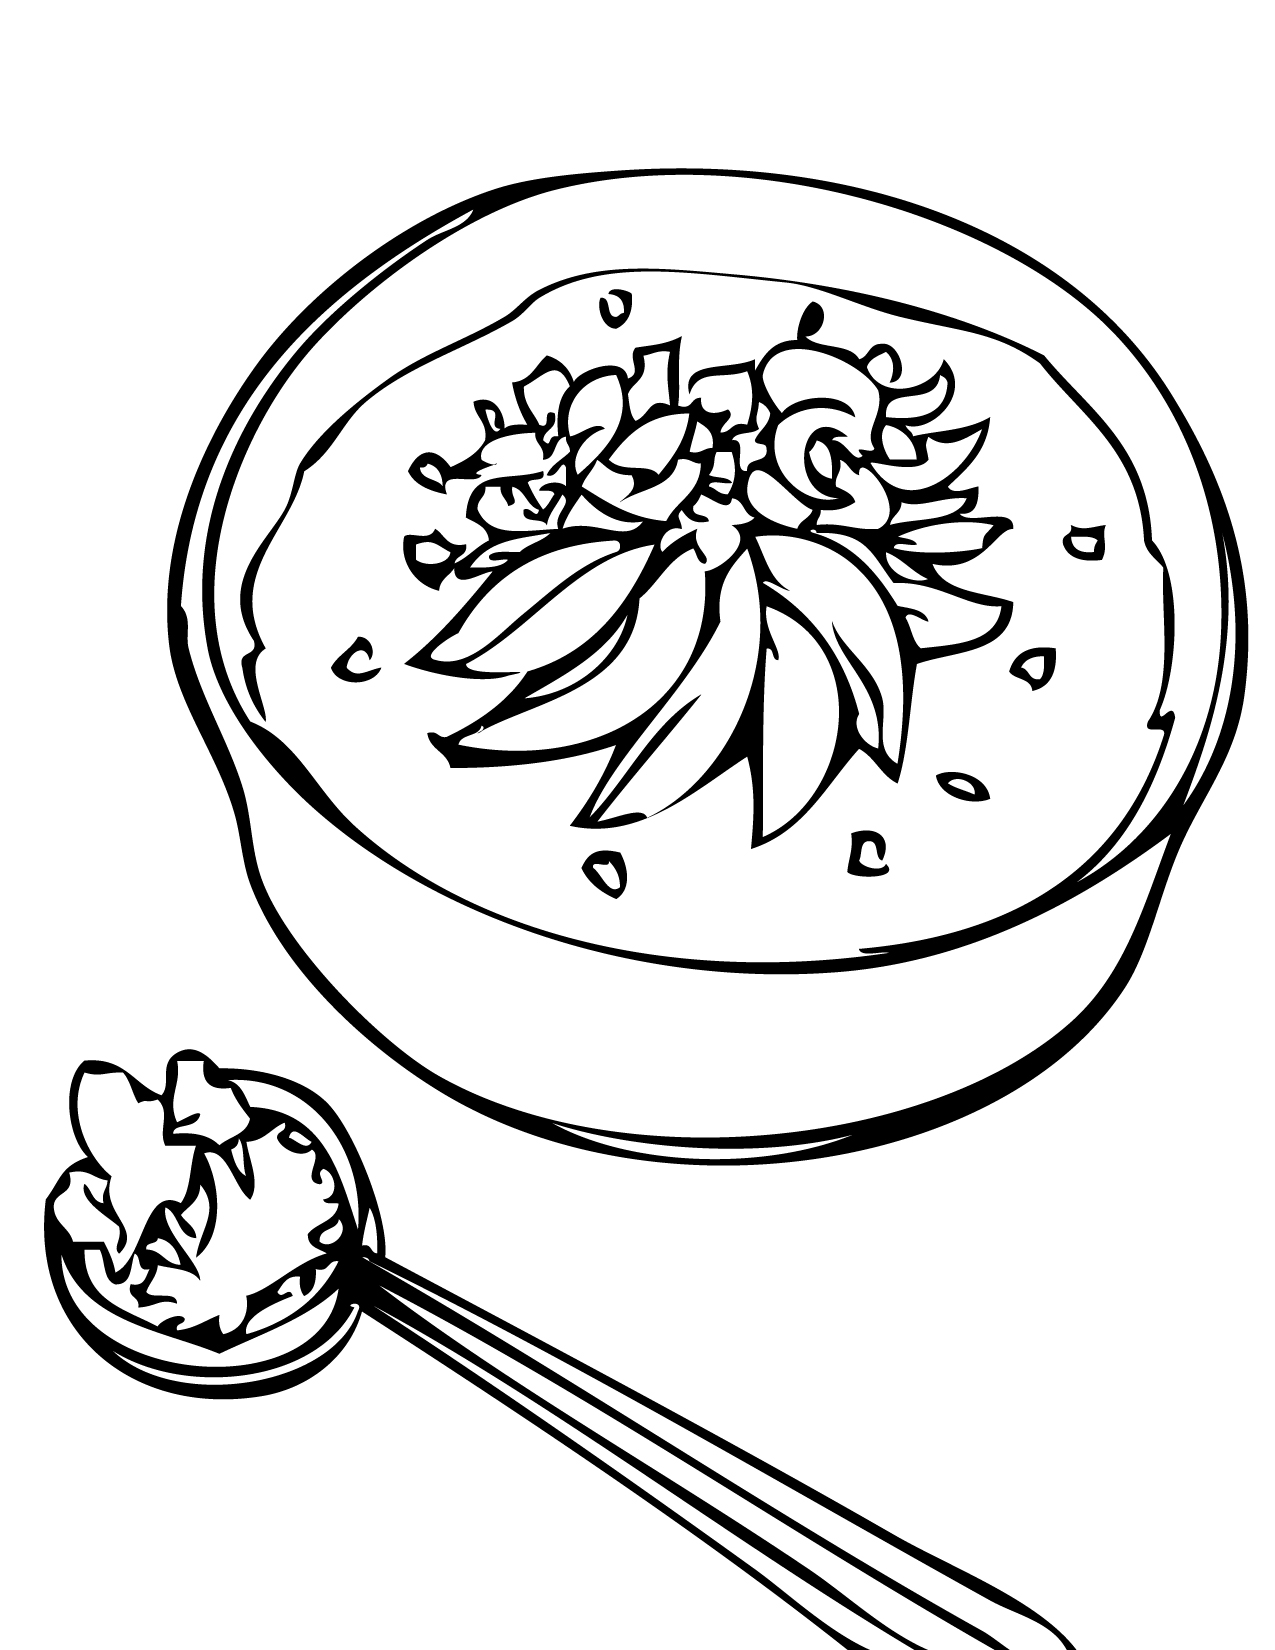 1275x1650 Delicious Food Coloring Pages For Kids